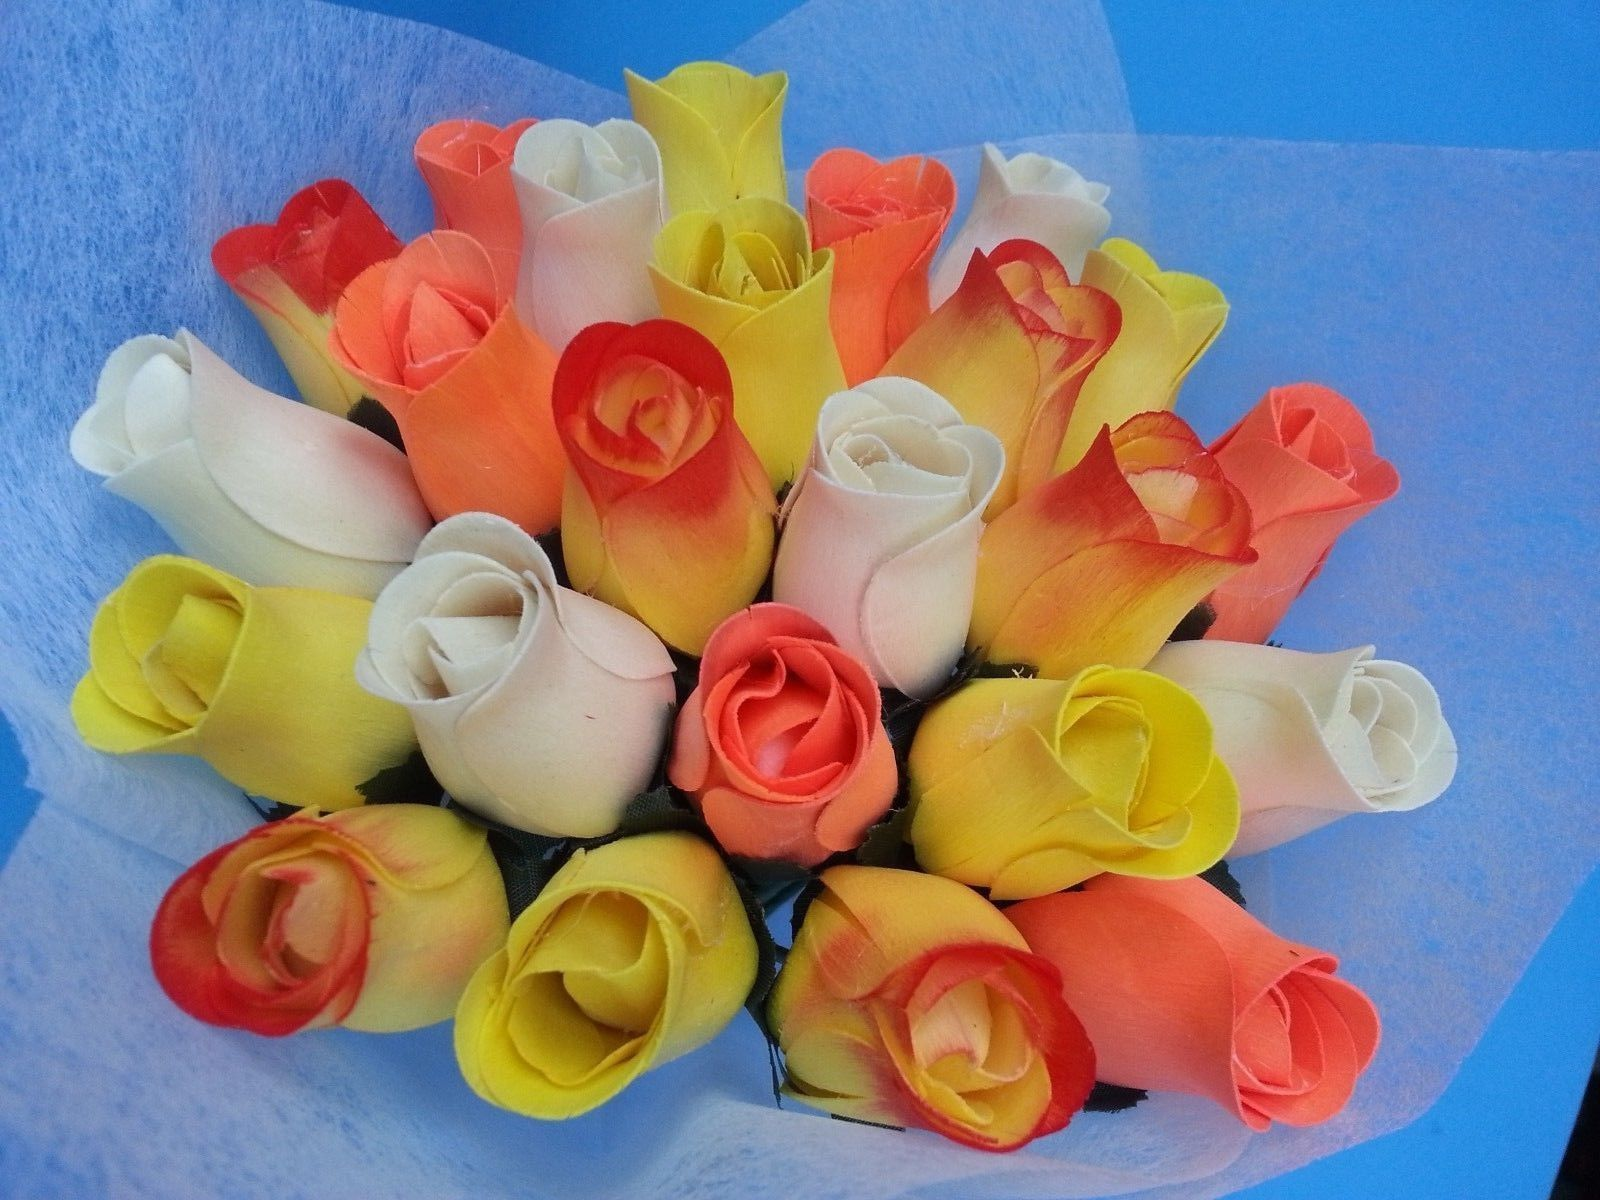 2 Dozen Wooden roses bouquet(White + Orange)-- Special Gift for Her w/ Free Bear